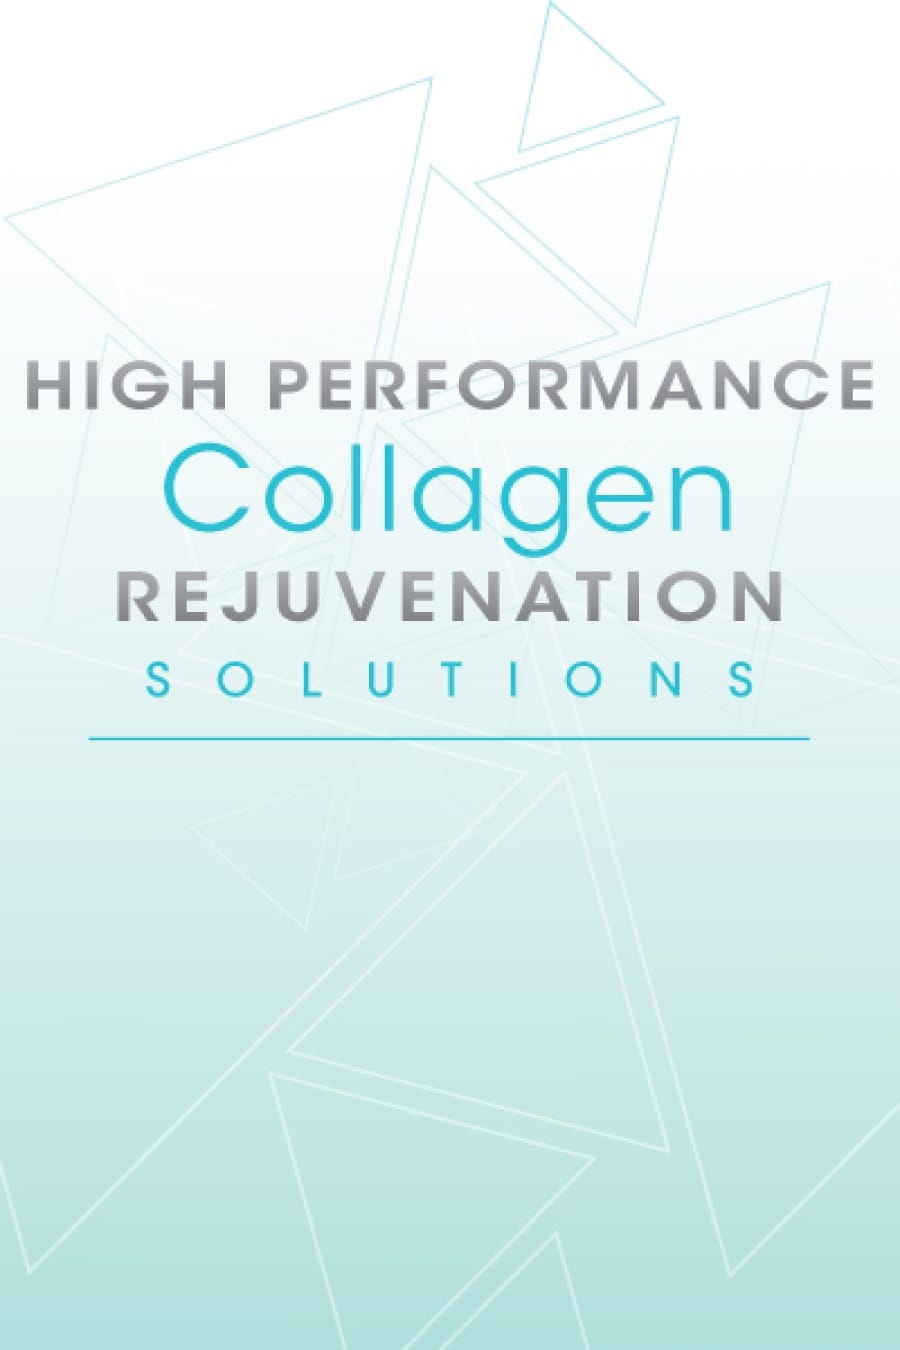 High Performance Collagen Rejuvenation Solutions